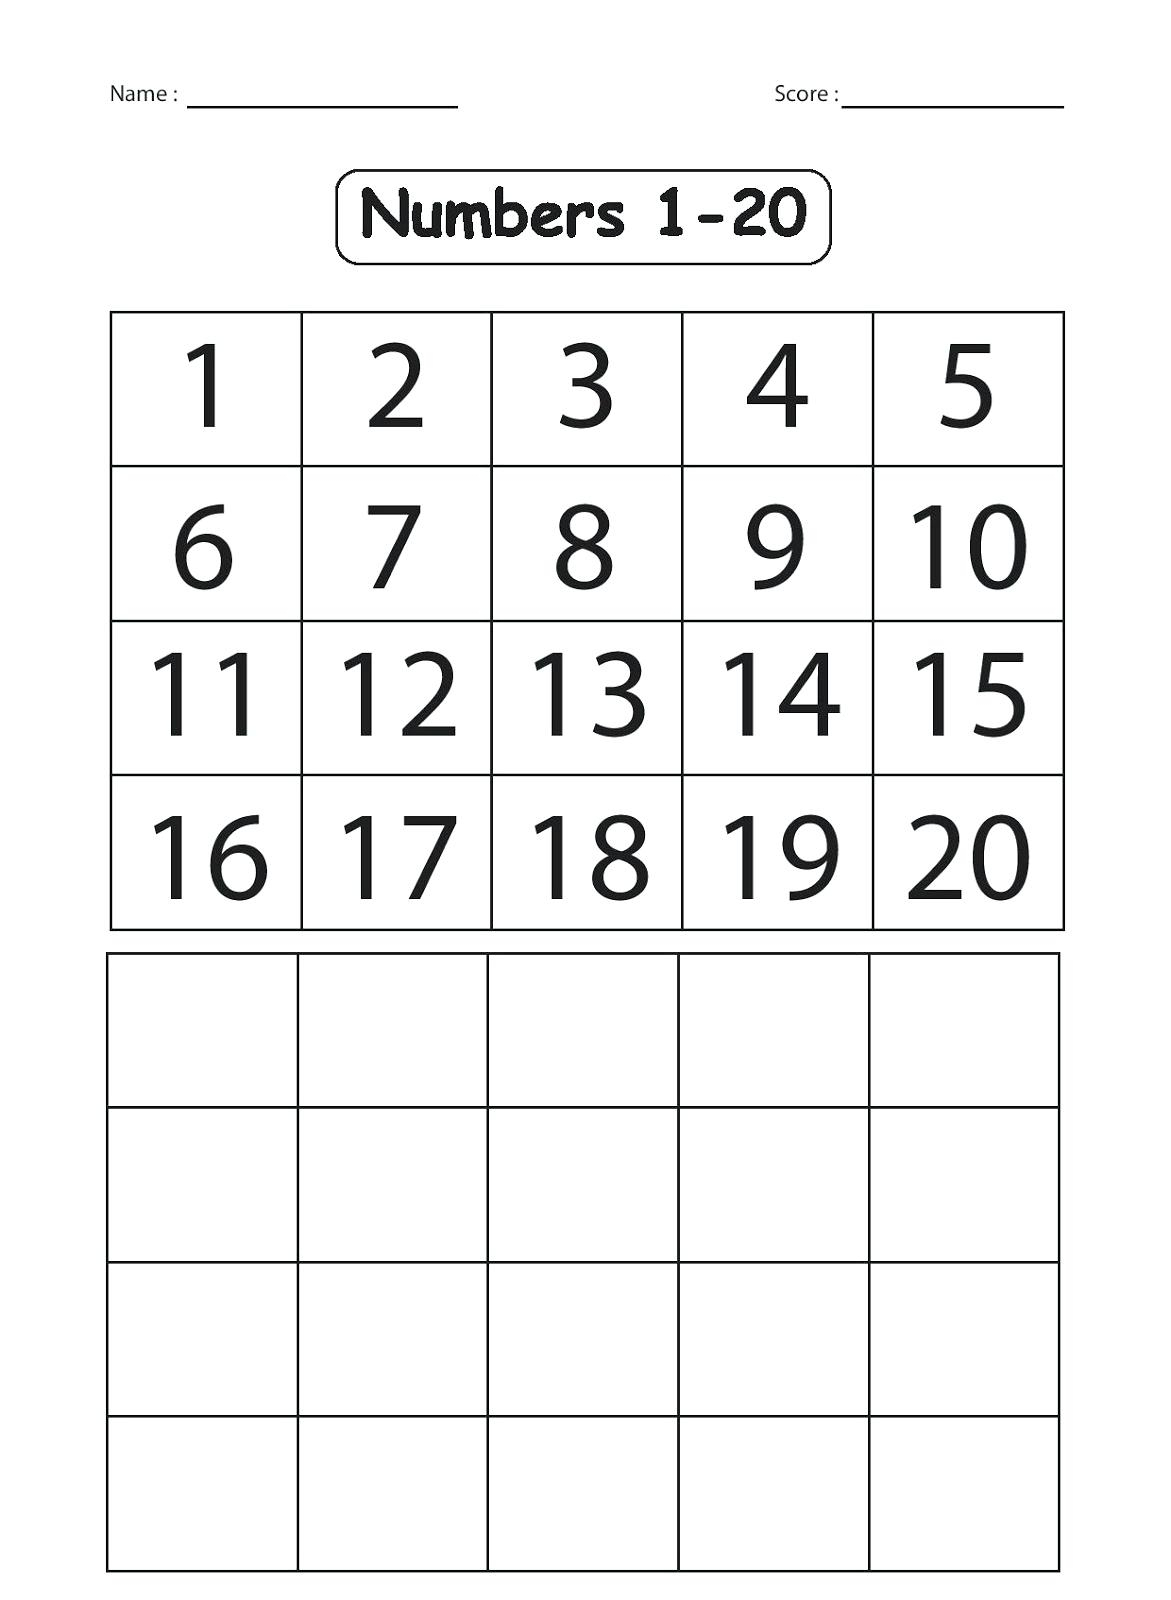 Kindergarten Number Worksheets 1 20 Worksheets Numbers 1 For - Free | Counting Worksheets 1 20 Printable